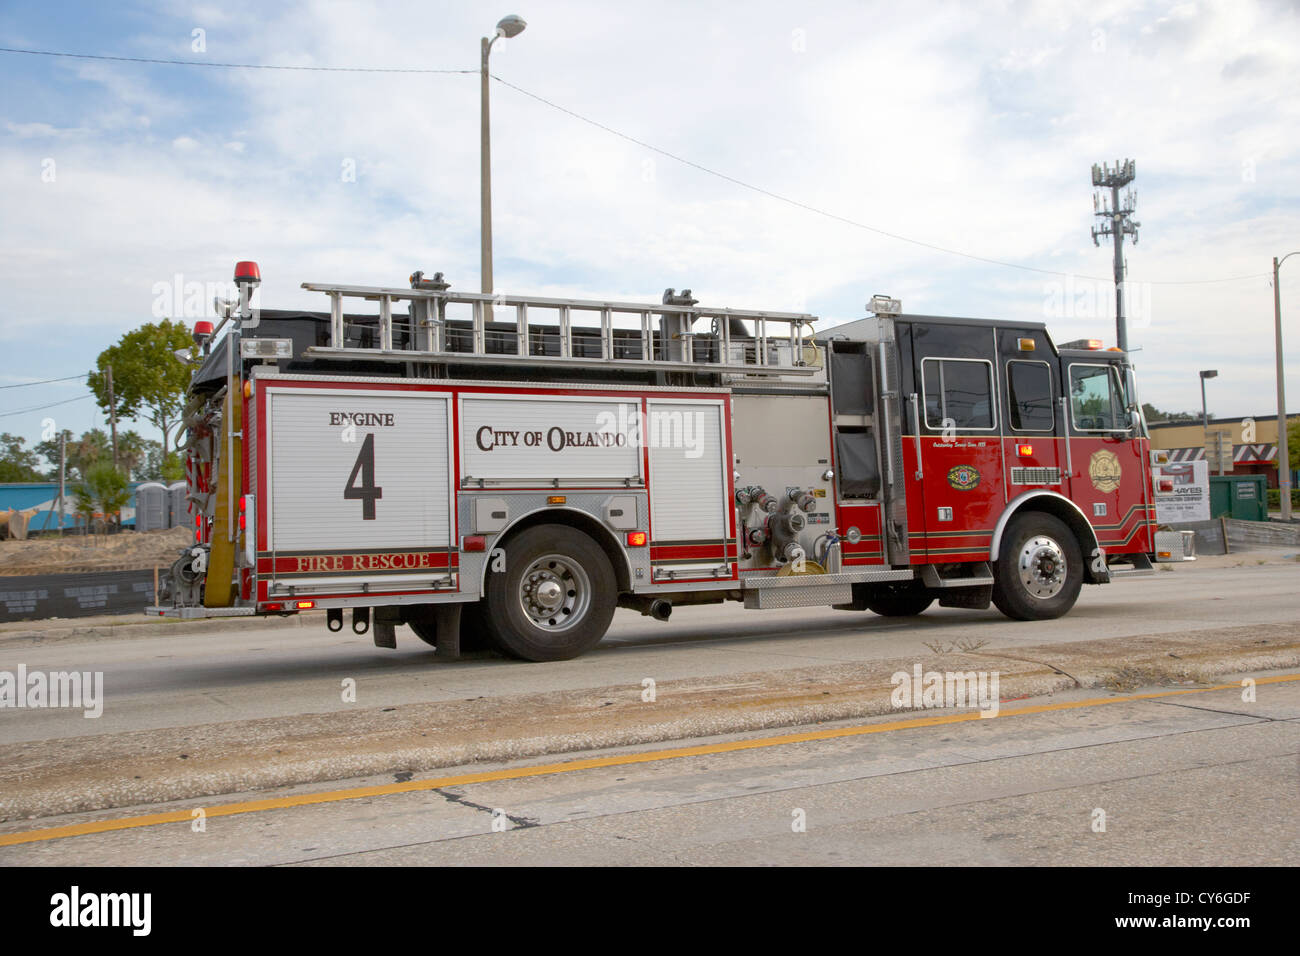 Fire truck on emergency call stockfotos fire truck on for Department of motor vehicles orlando fl